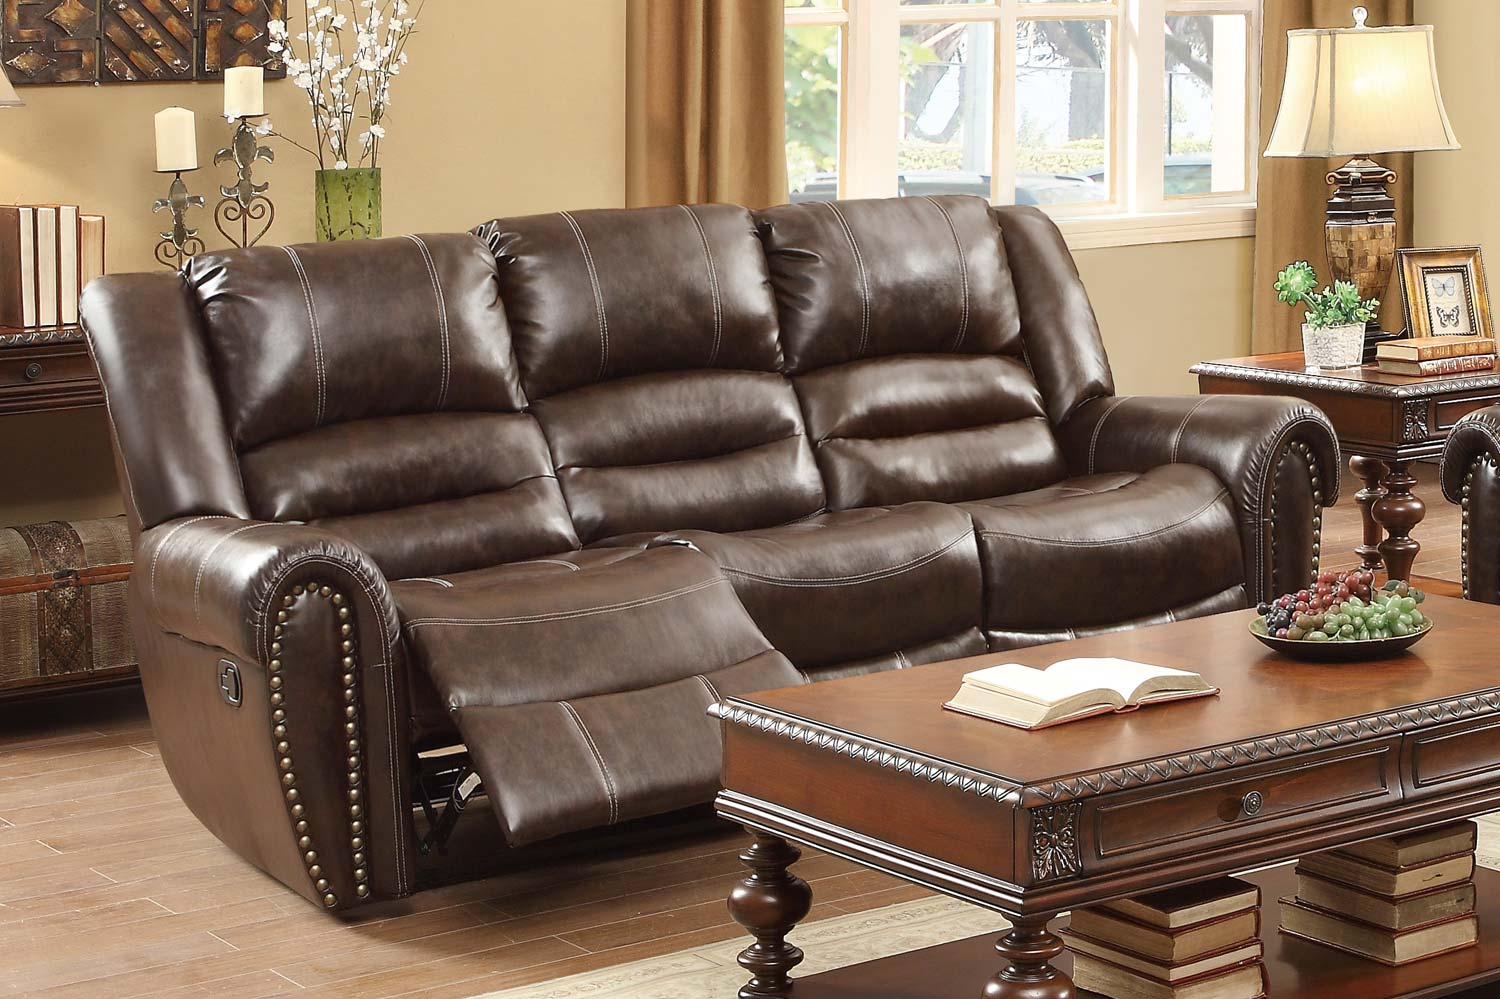 Homelegance Center Hill Double Reclining Sofa- Dark Brown Bonded Leather  Match